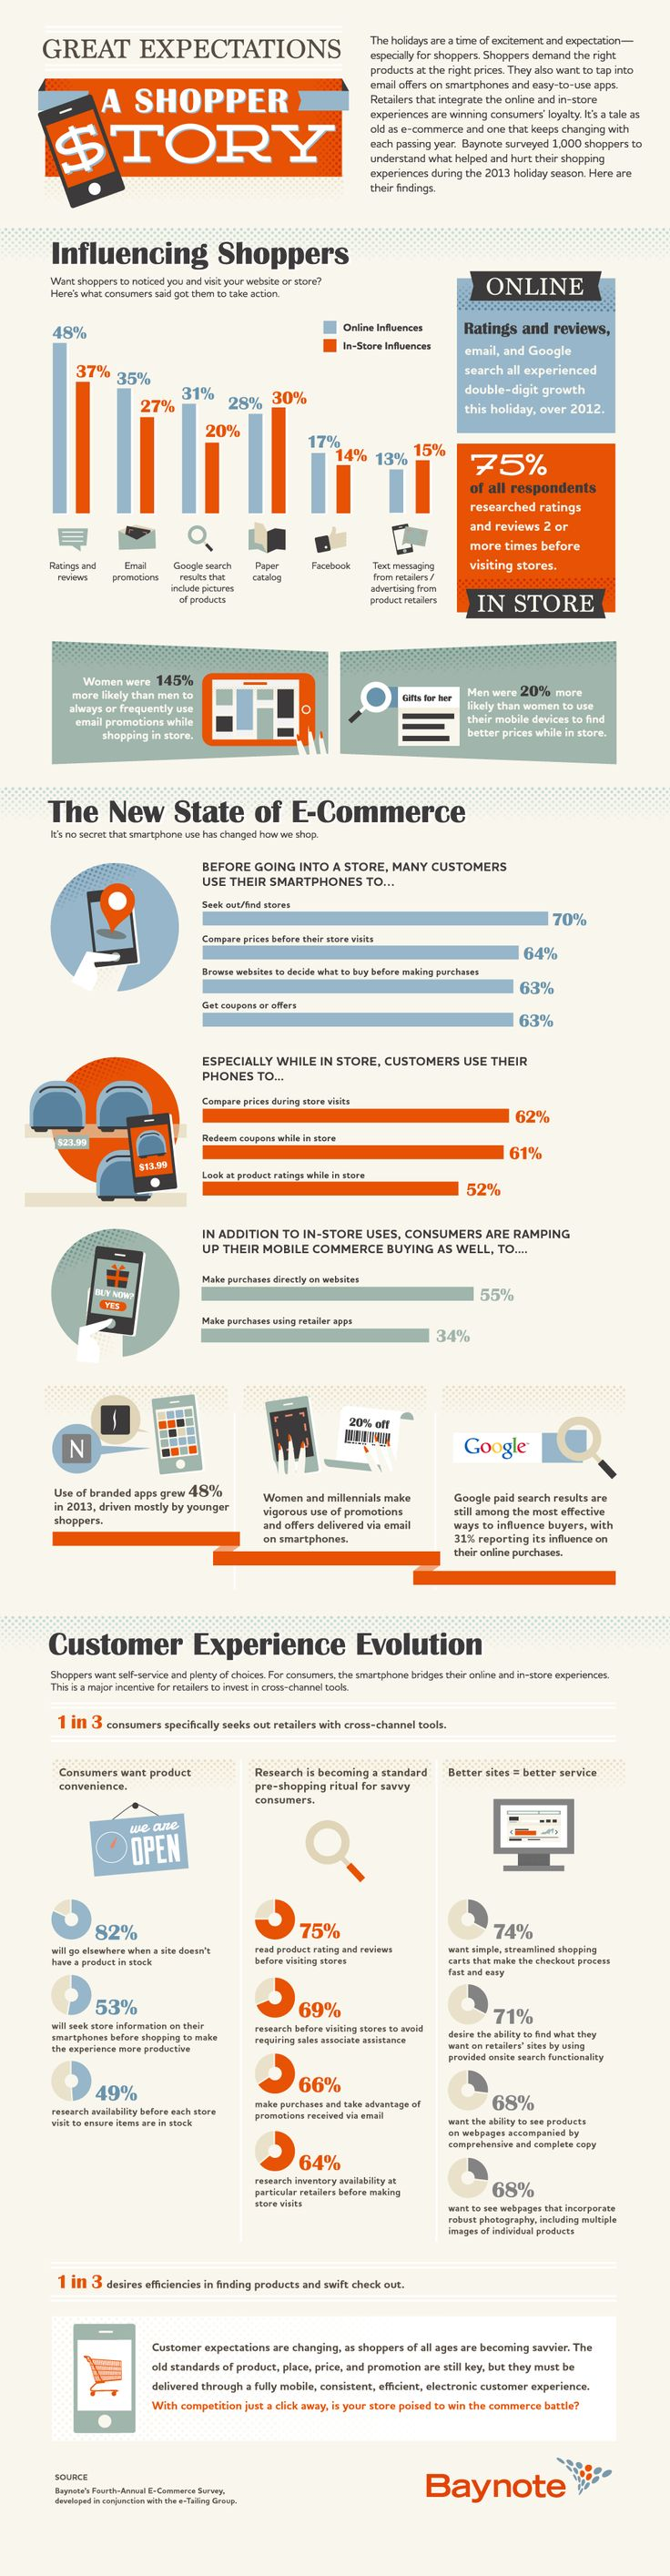 Great Expectations A Shopper Story   #Infographic #Marketing #Ecommerce #Shopper